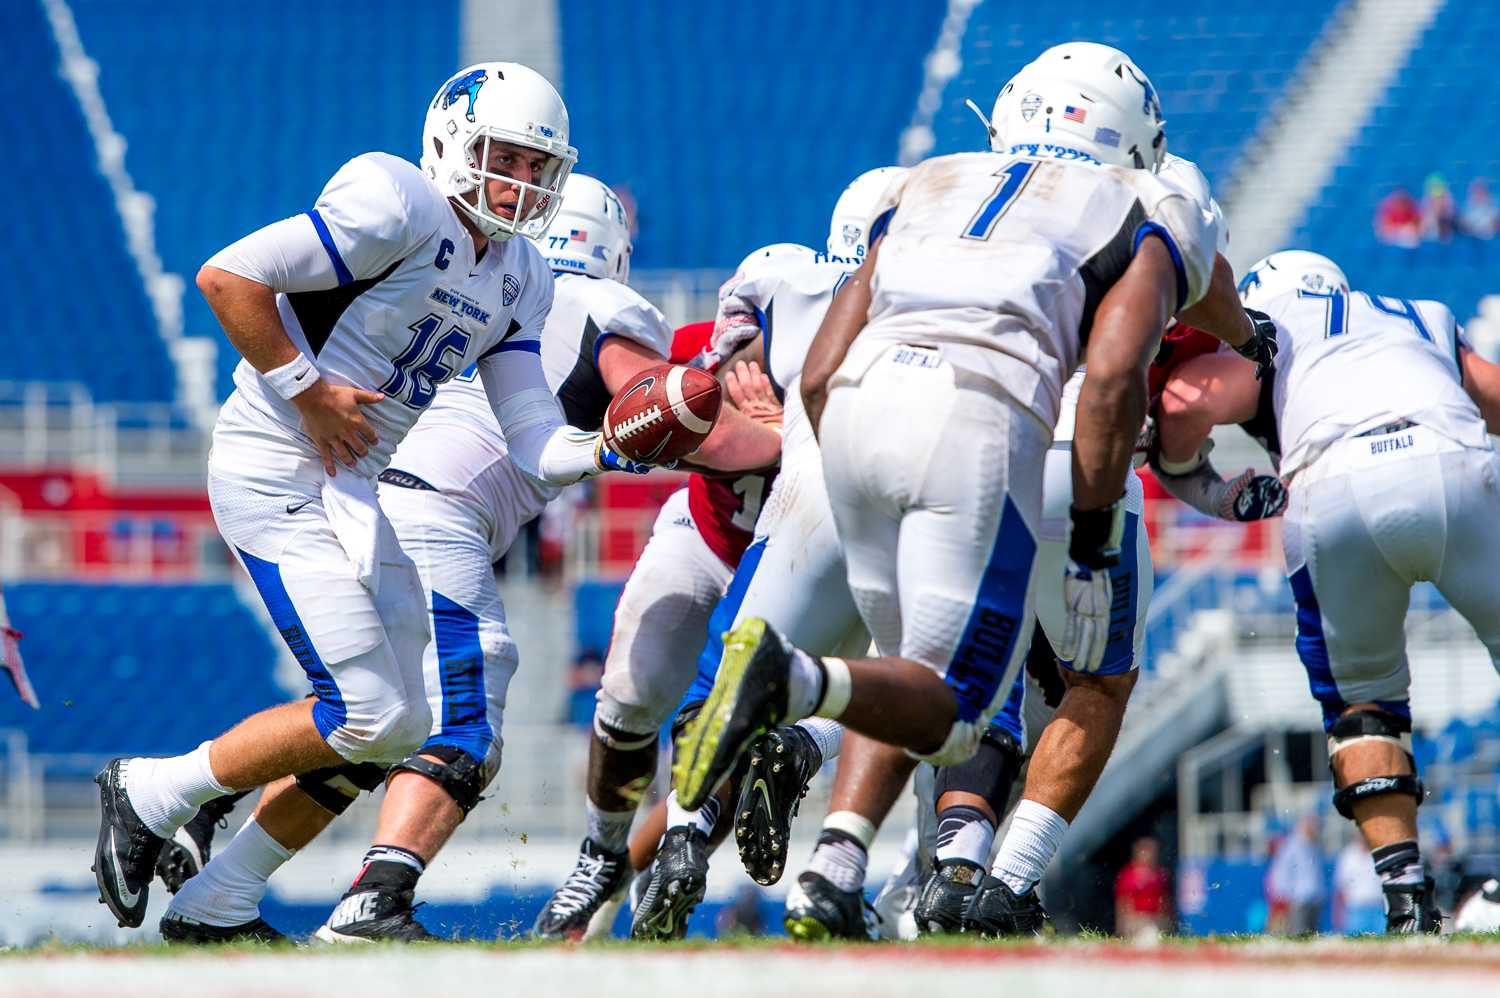 Buffalo Bulls quarterback Joe Licata (16) hands off the ball to Anthone Taylor (1) in one of the Bulls' final plays of the game Saturday. Max Jackson | Staff Photographer